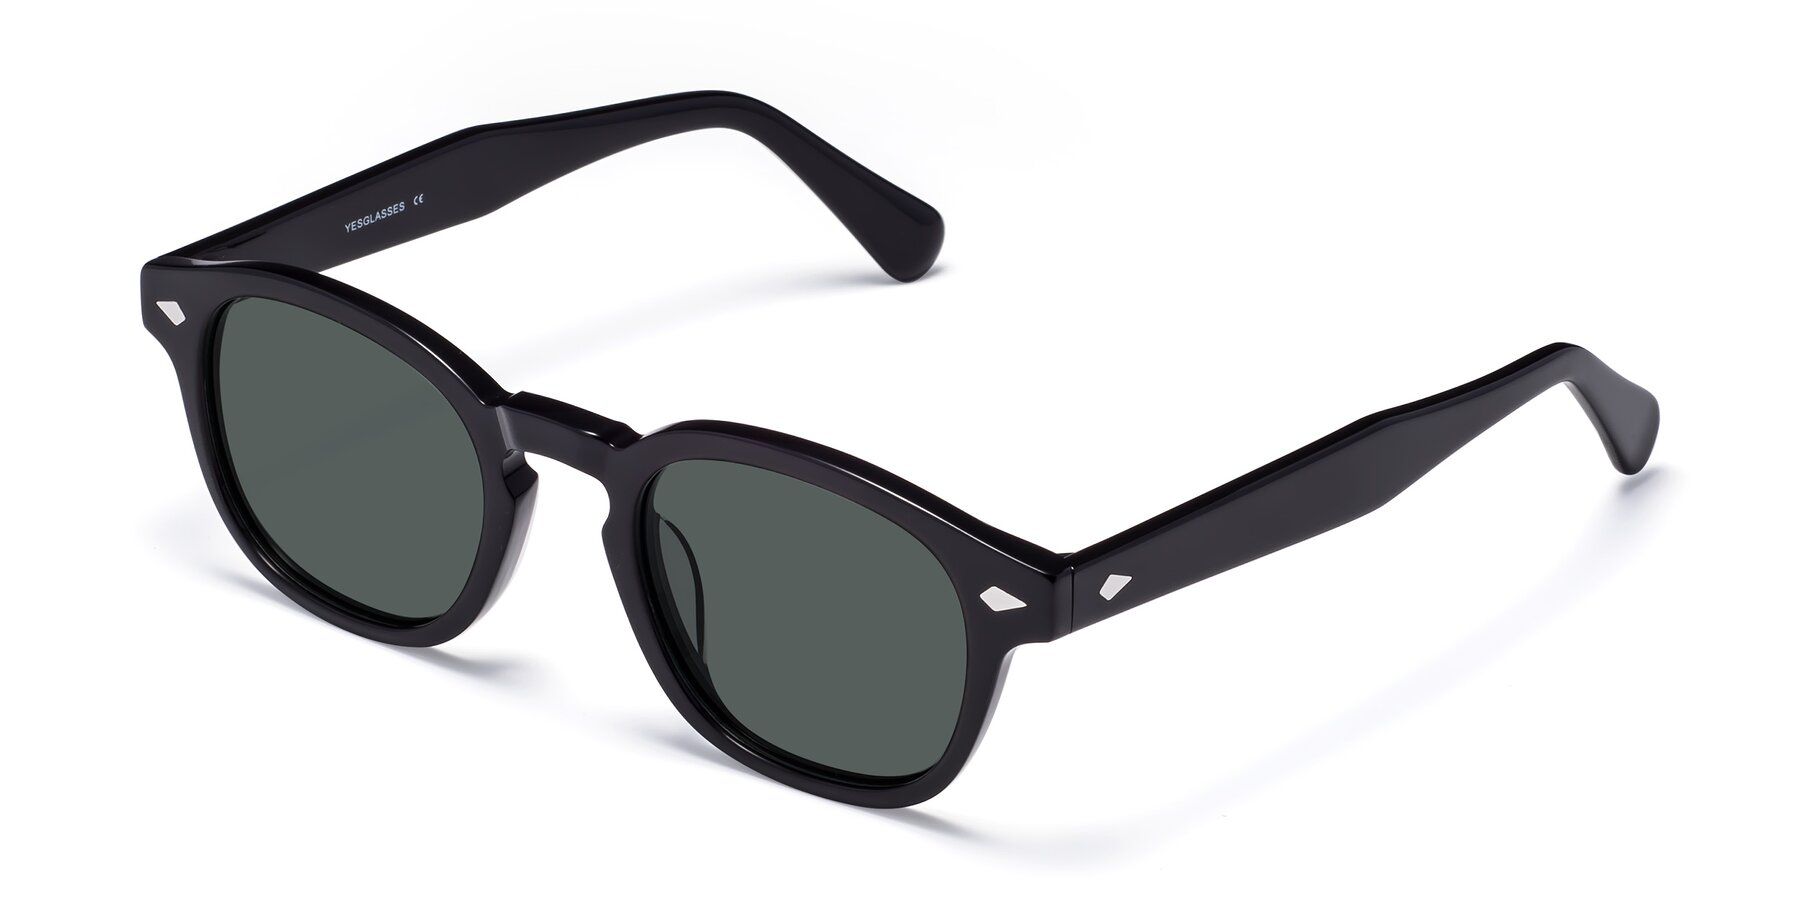 Angle of WALL-E in Black with Gray Polarized Lenses